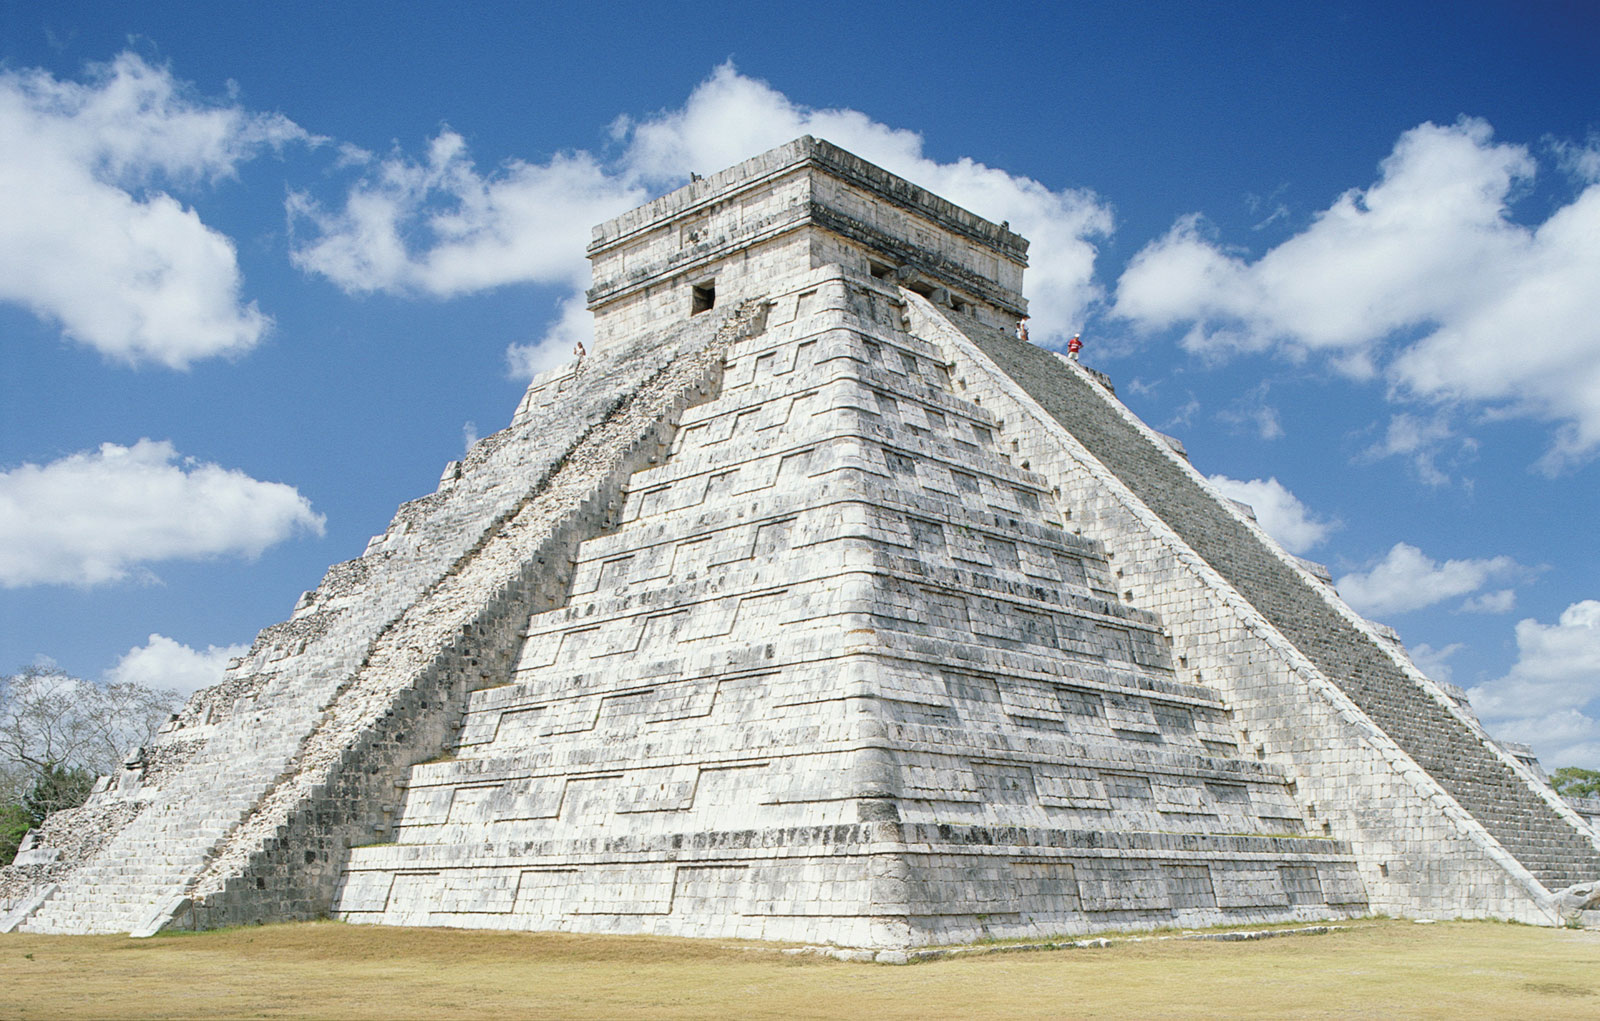 pyramid of kukulkn chichen itza mexico wallpapers - Wallpaper pyramid of kukulkn chichen itza mexico